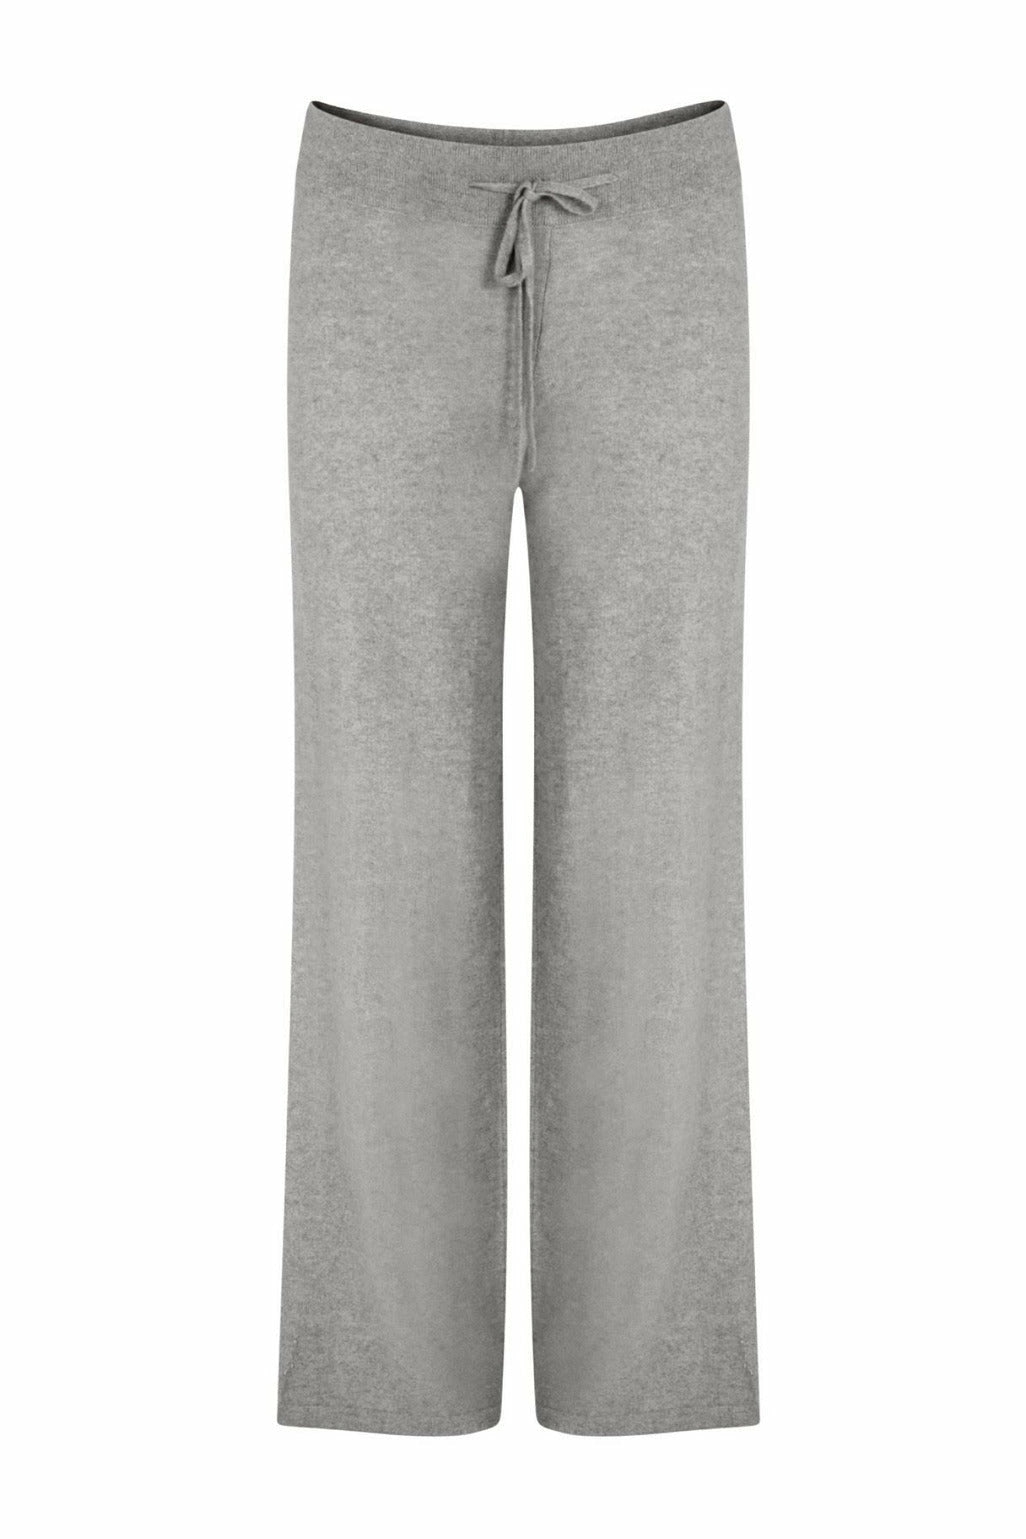 100% Cashmere Pant in London Grey